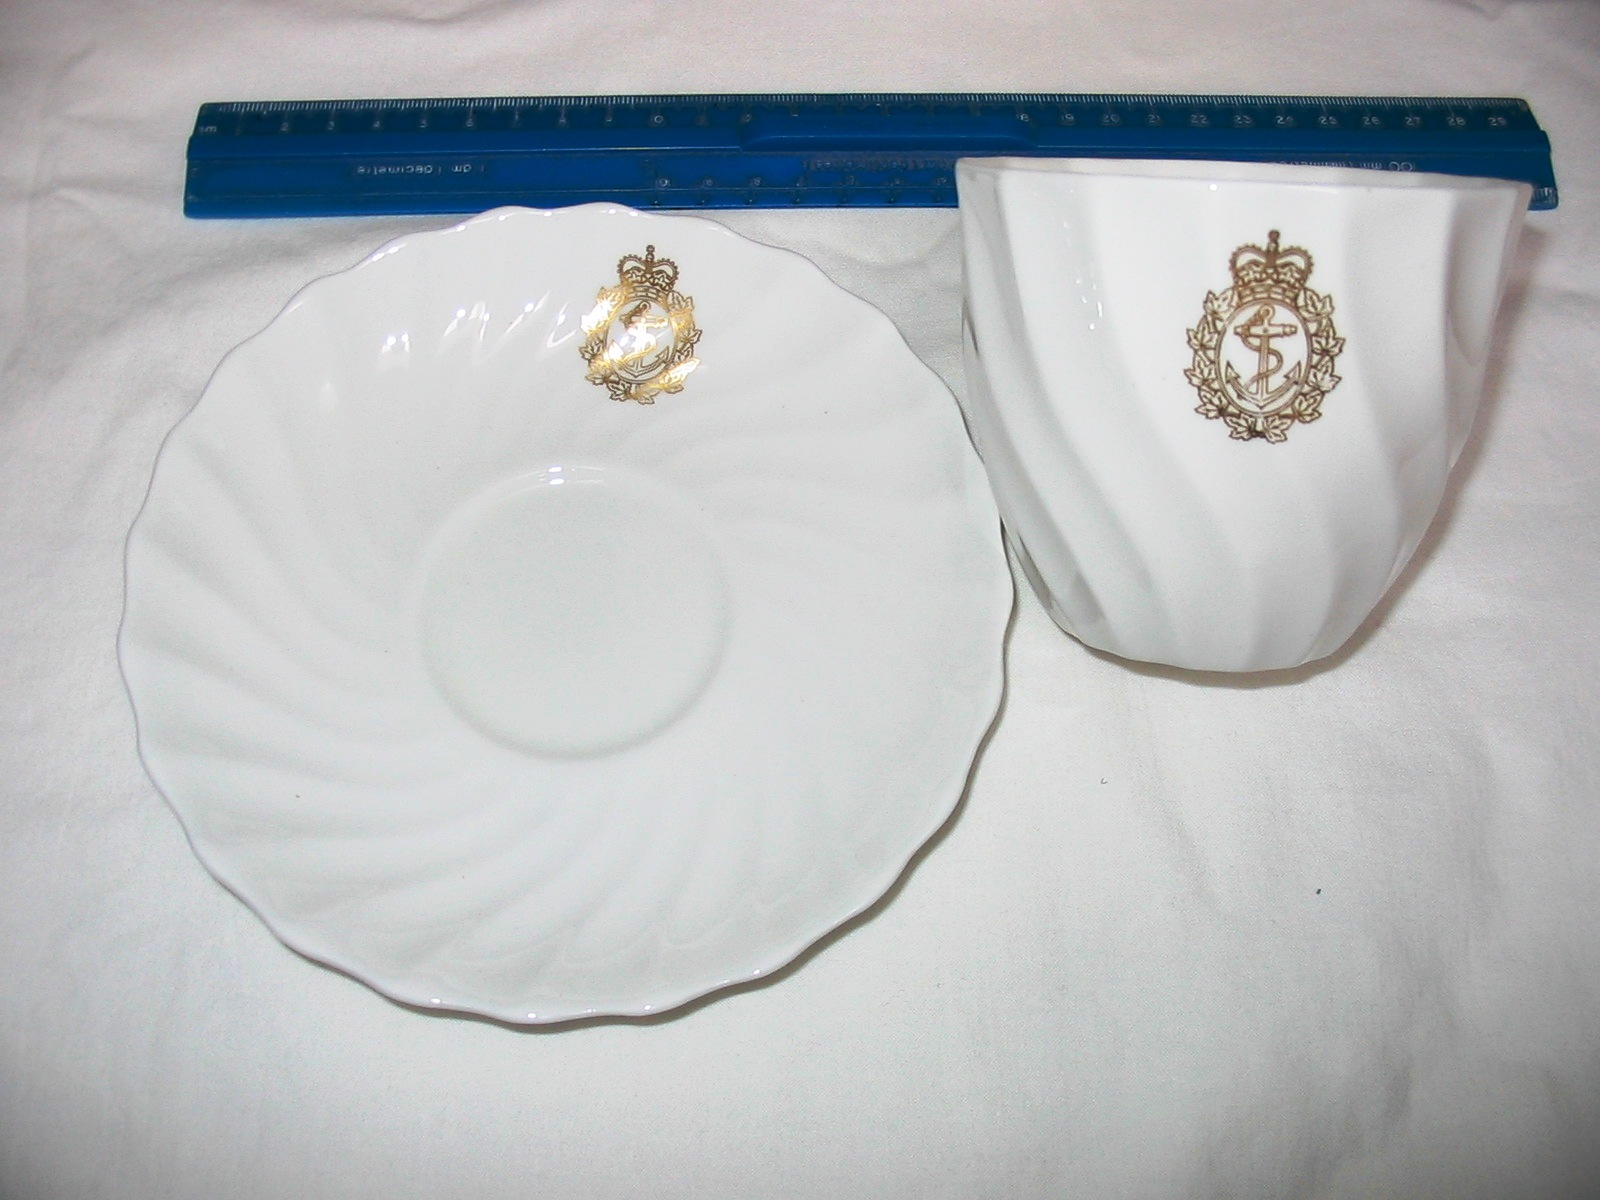 RCN Officer's China